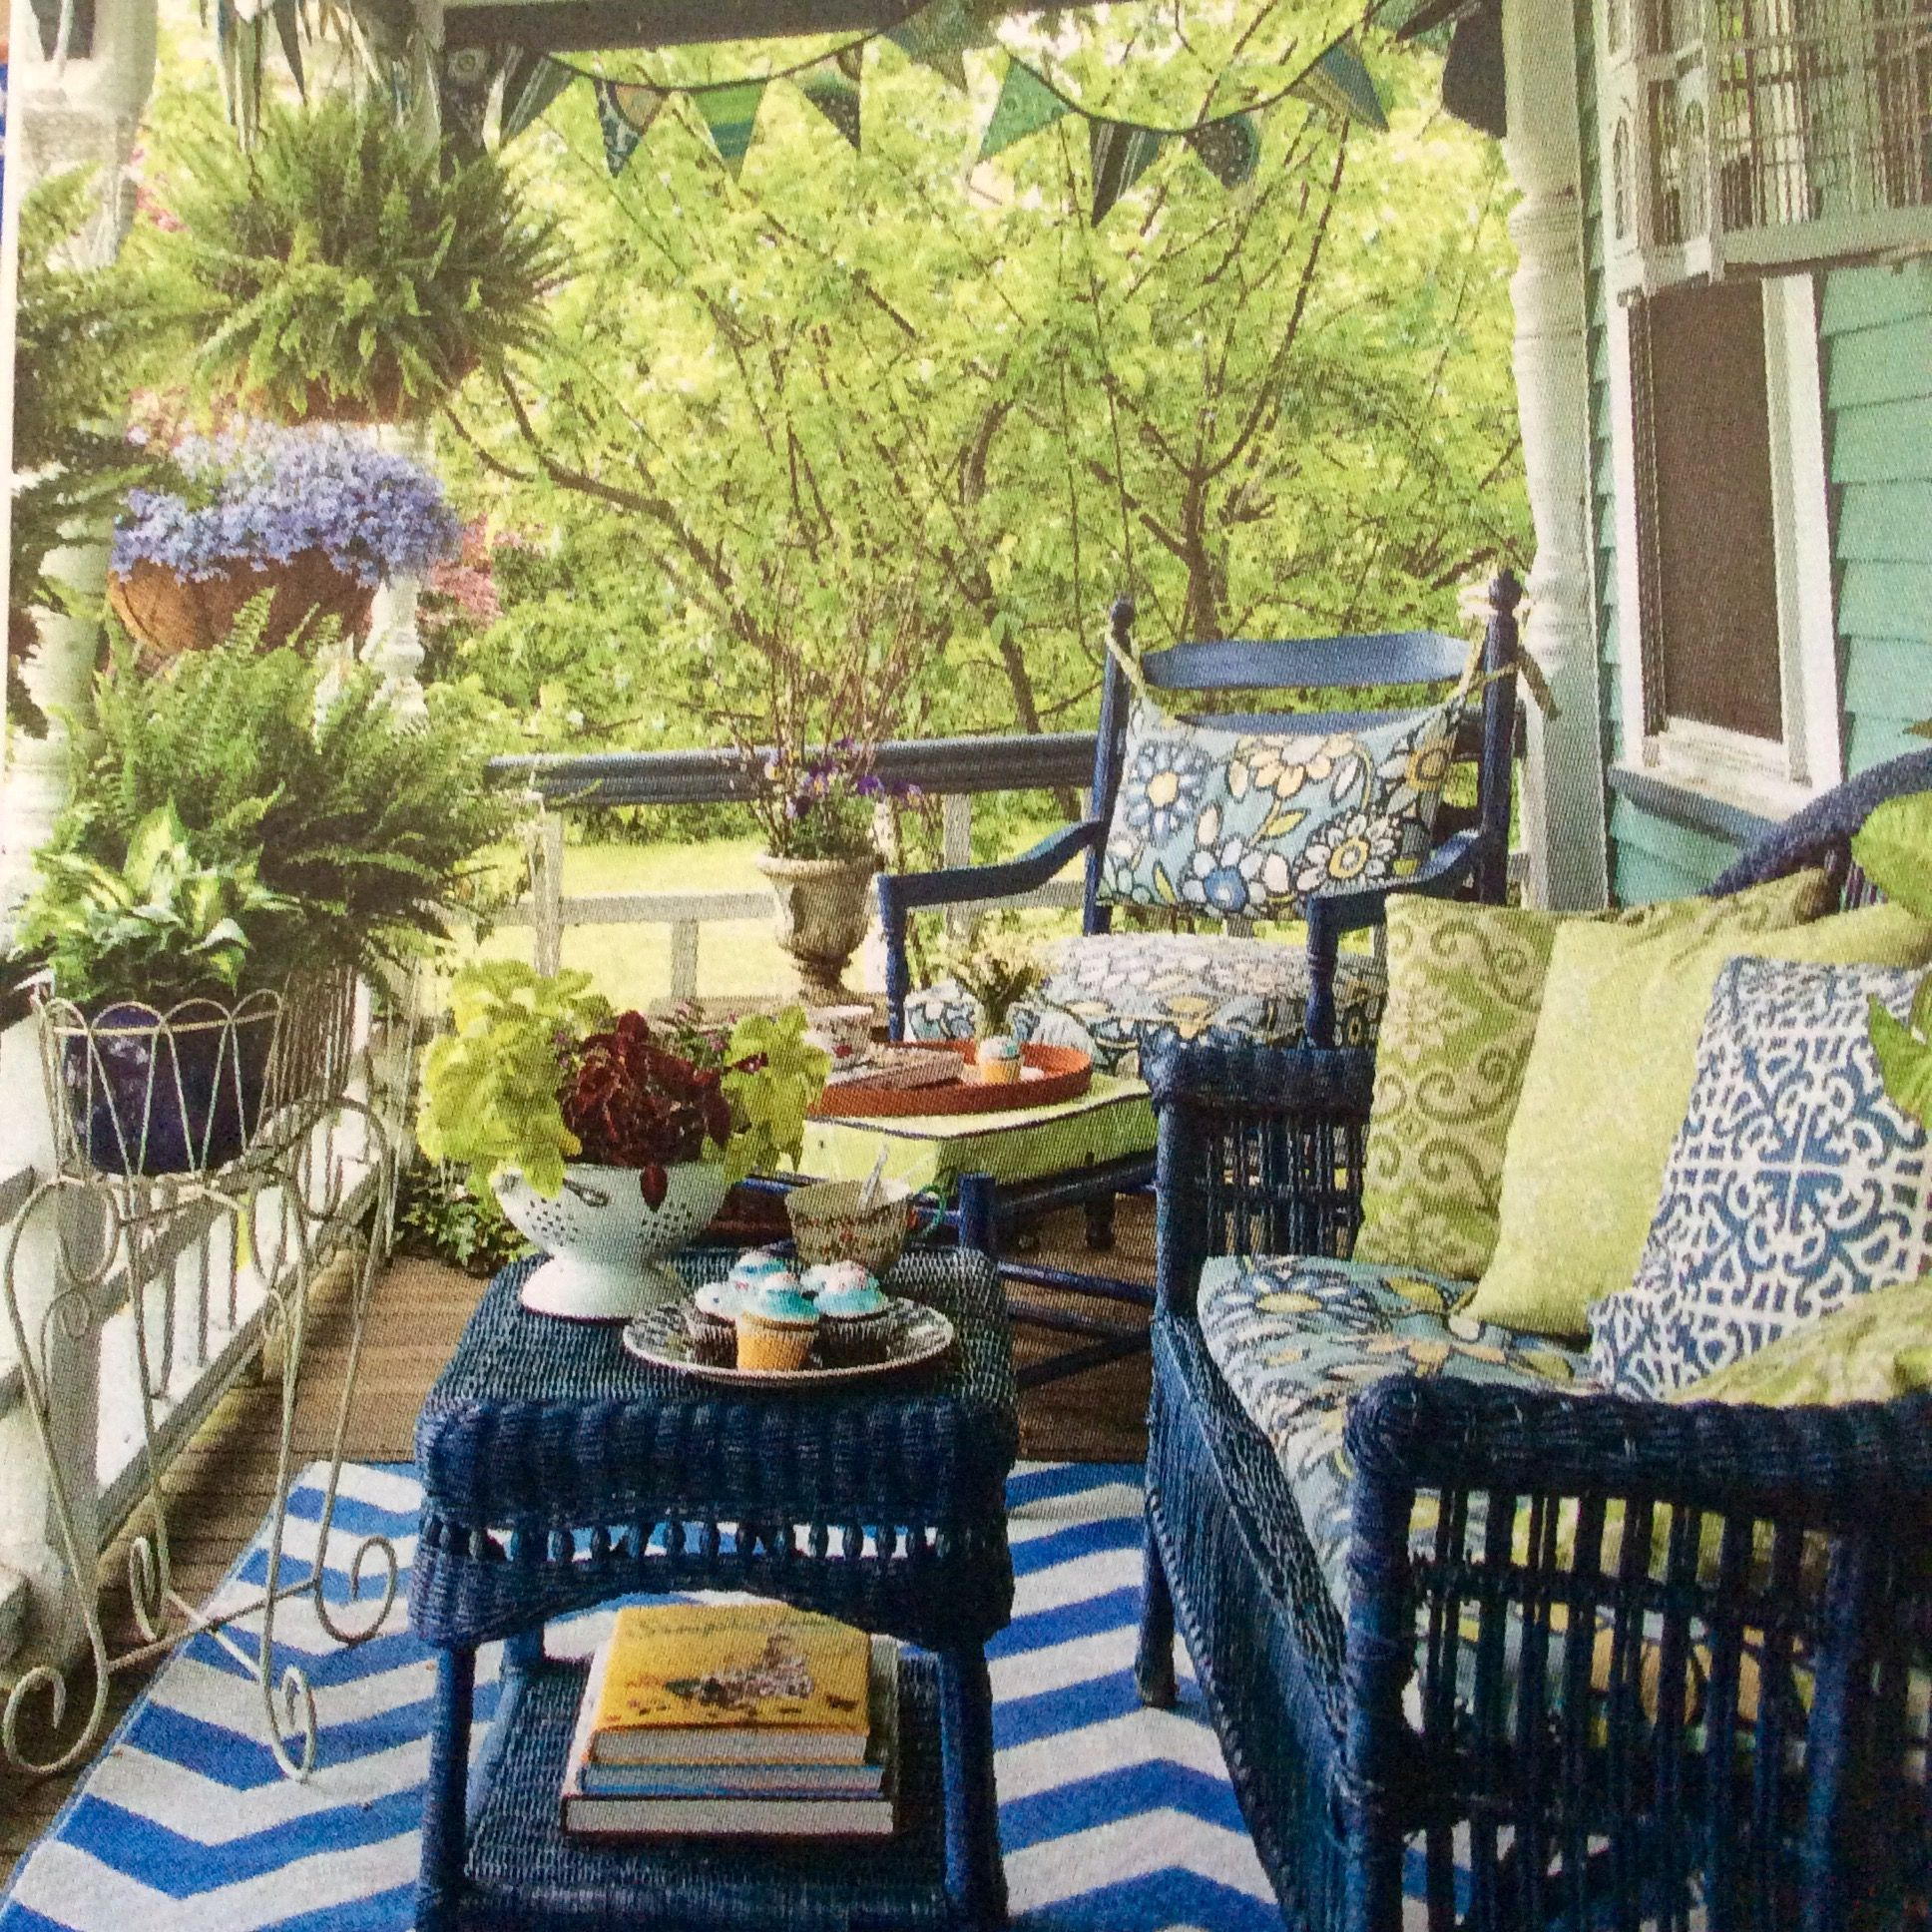 Pin by Stephanie Seipert on Design: Porches & Outdoor ... on Living Spaces Outdoor Sectional id=55670